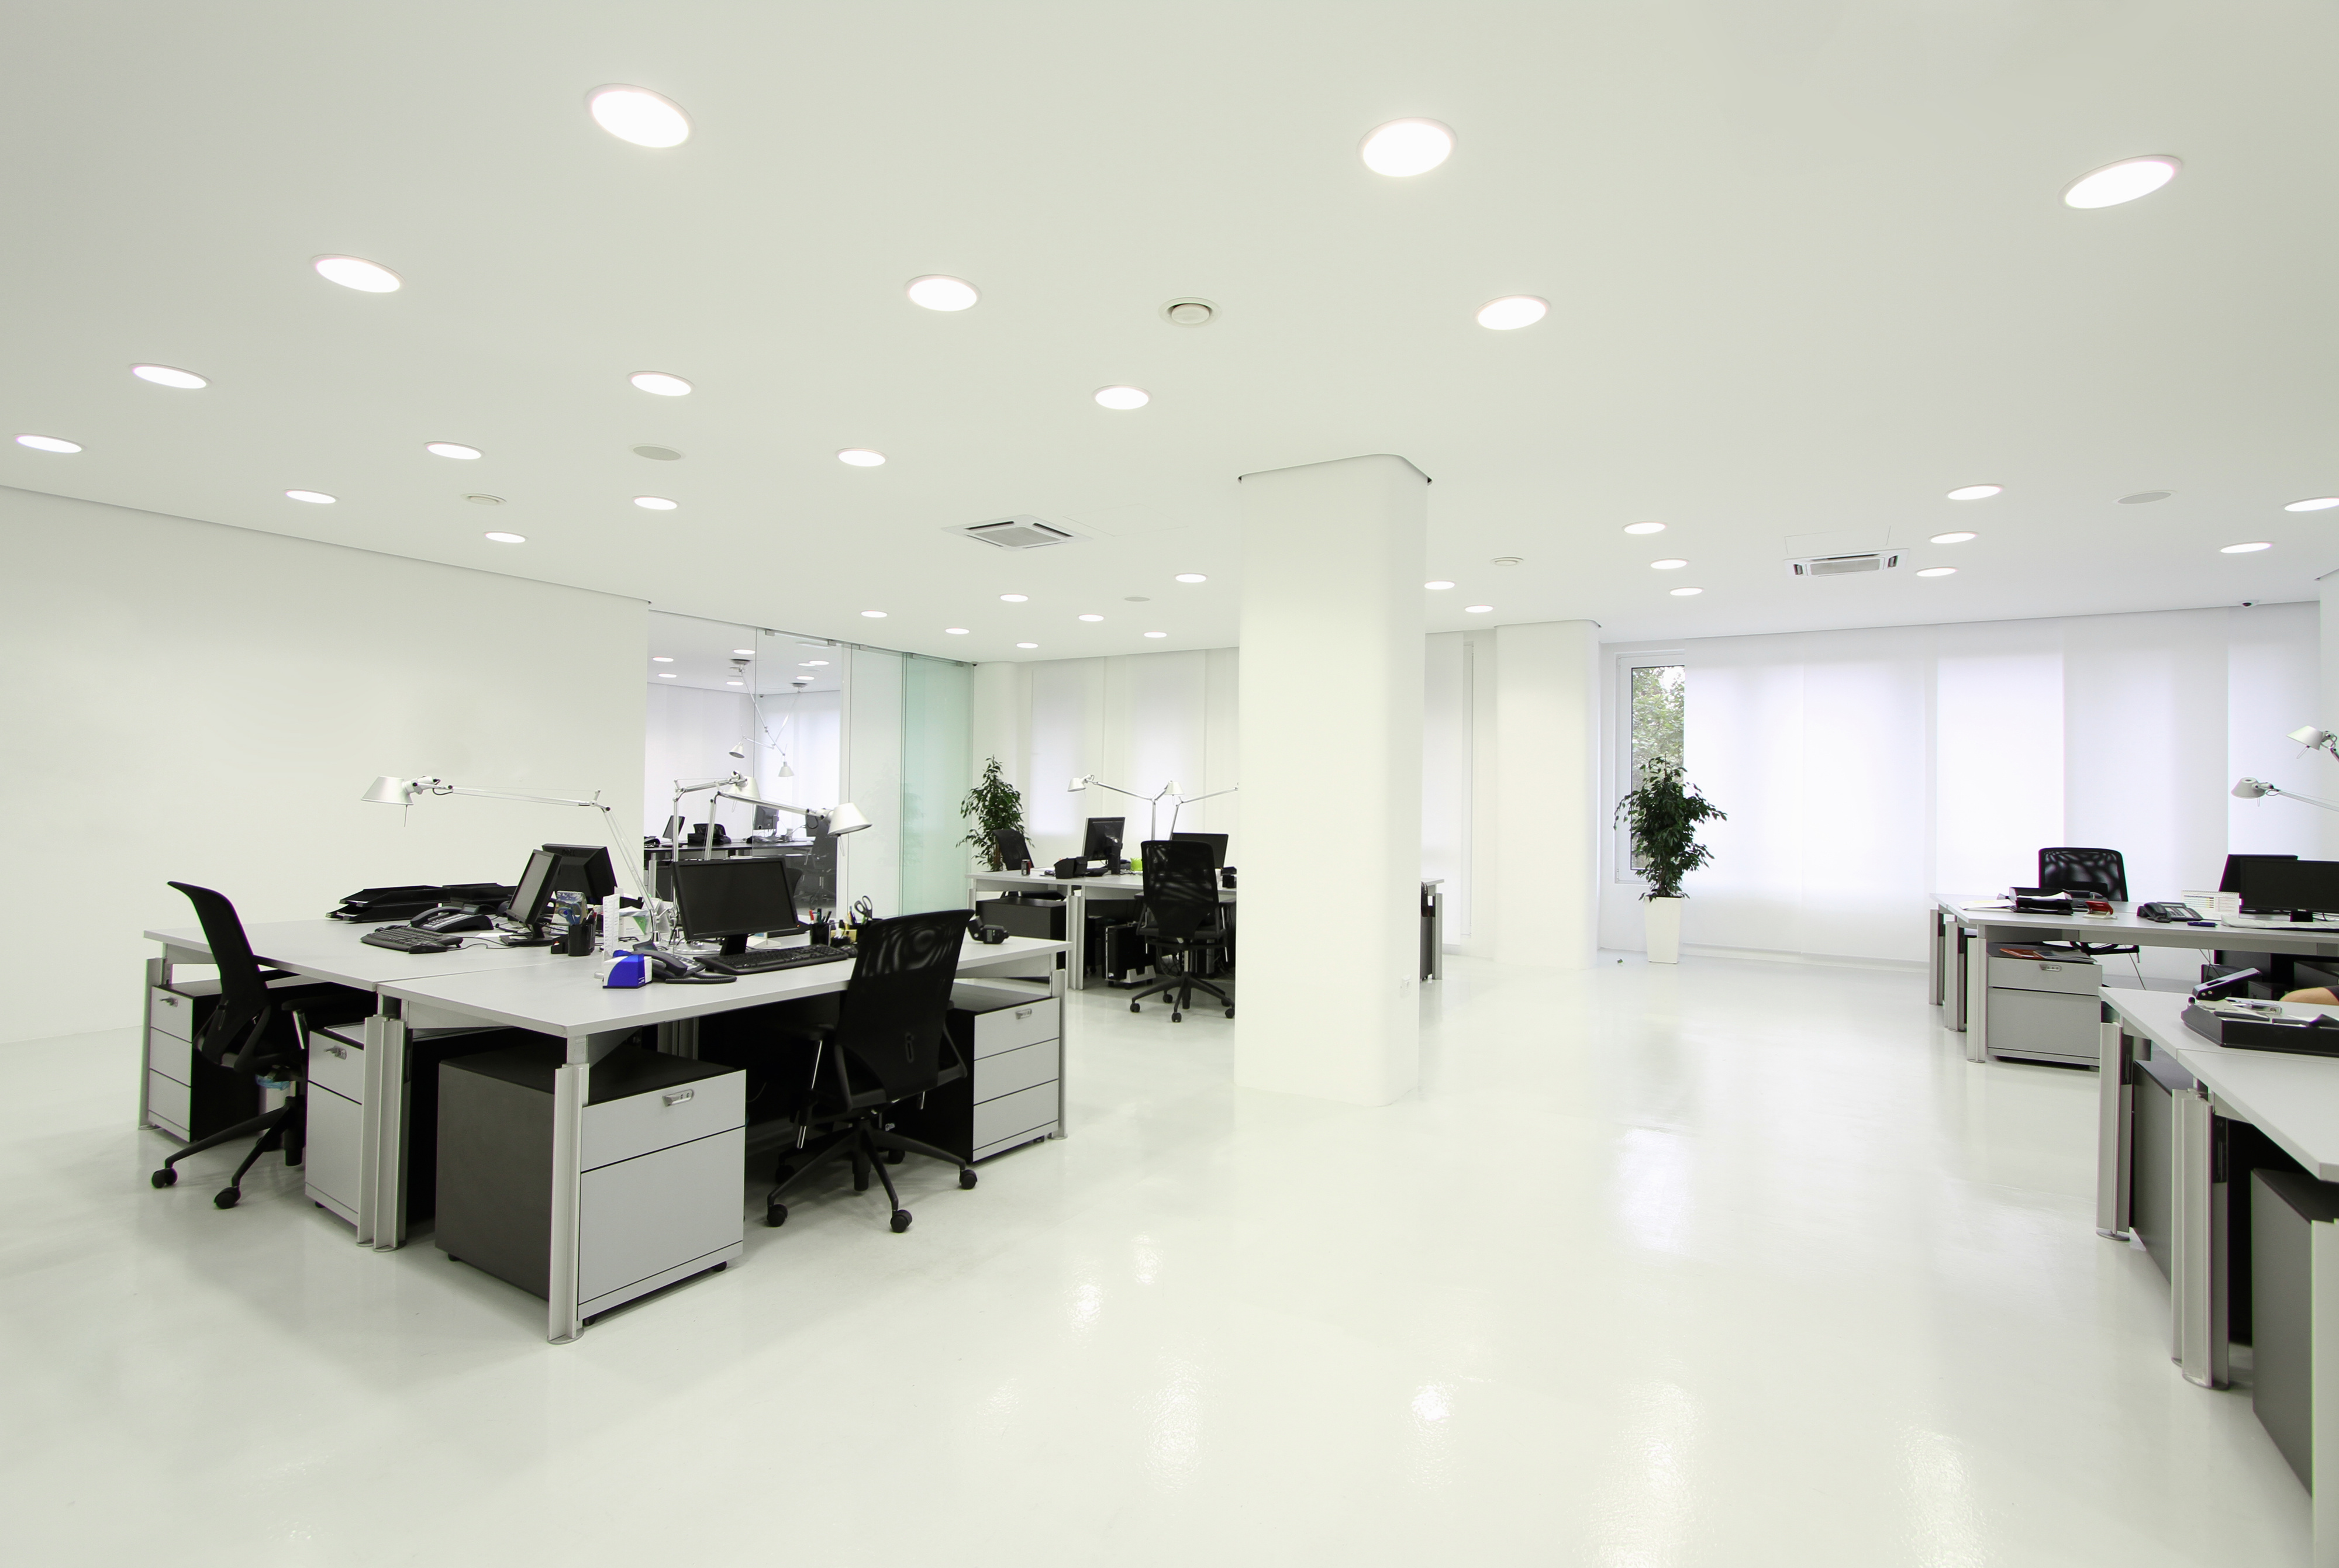 Office lit by LED lighting